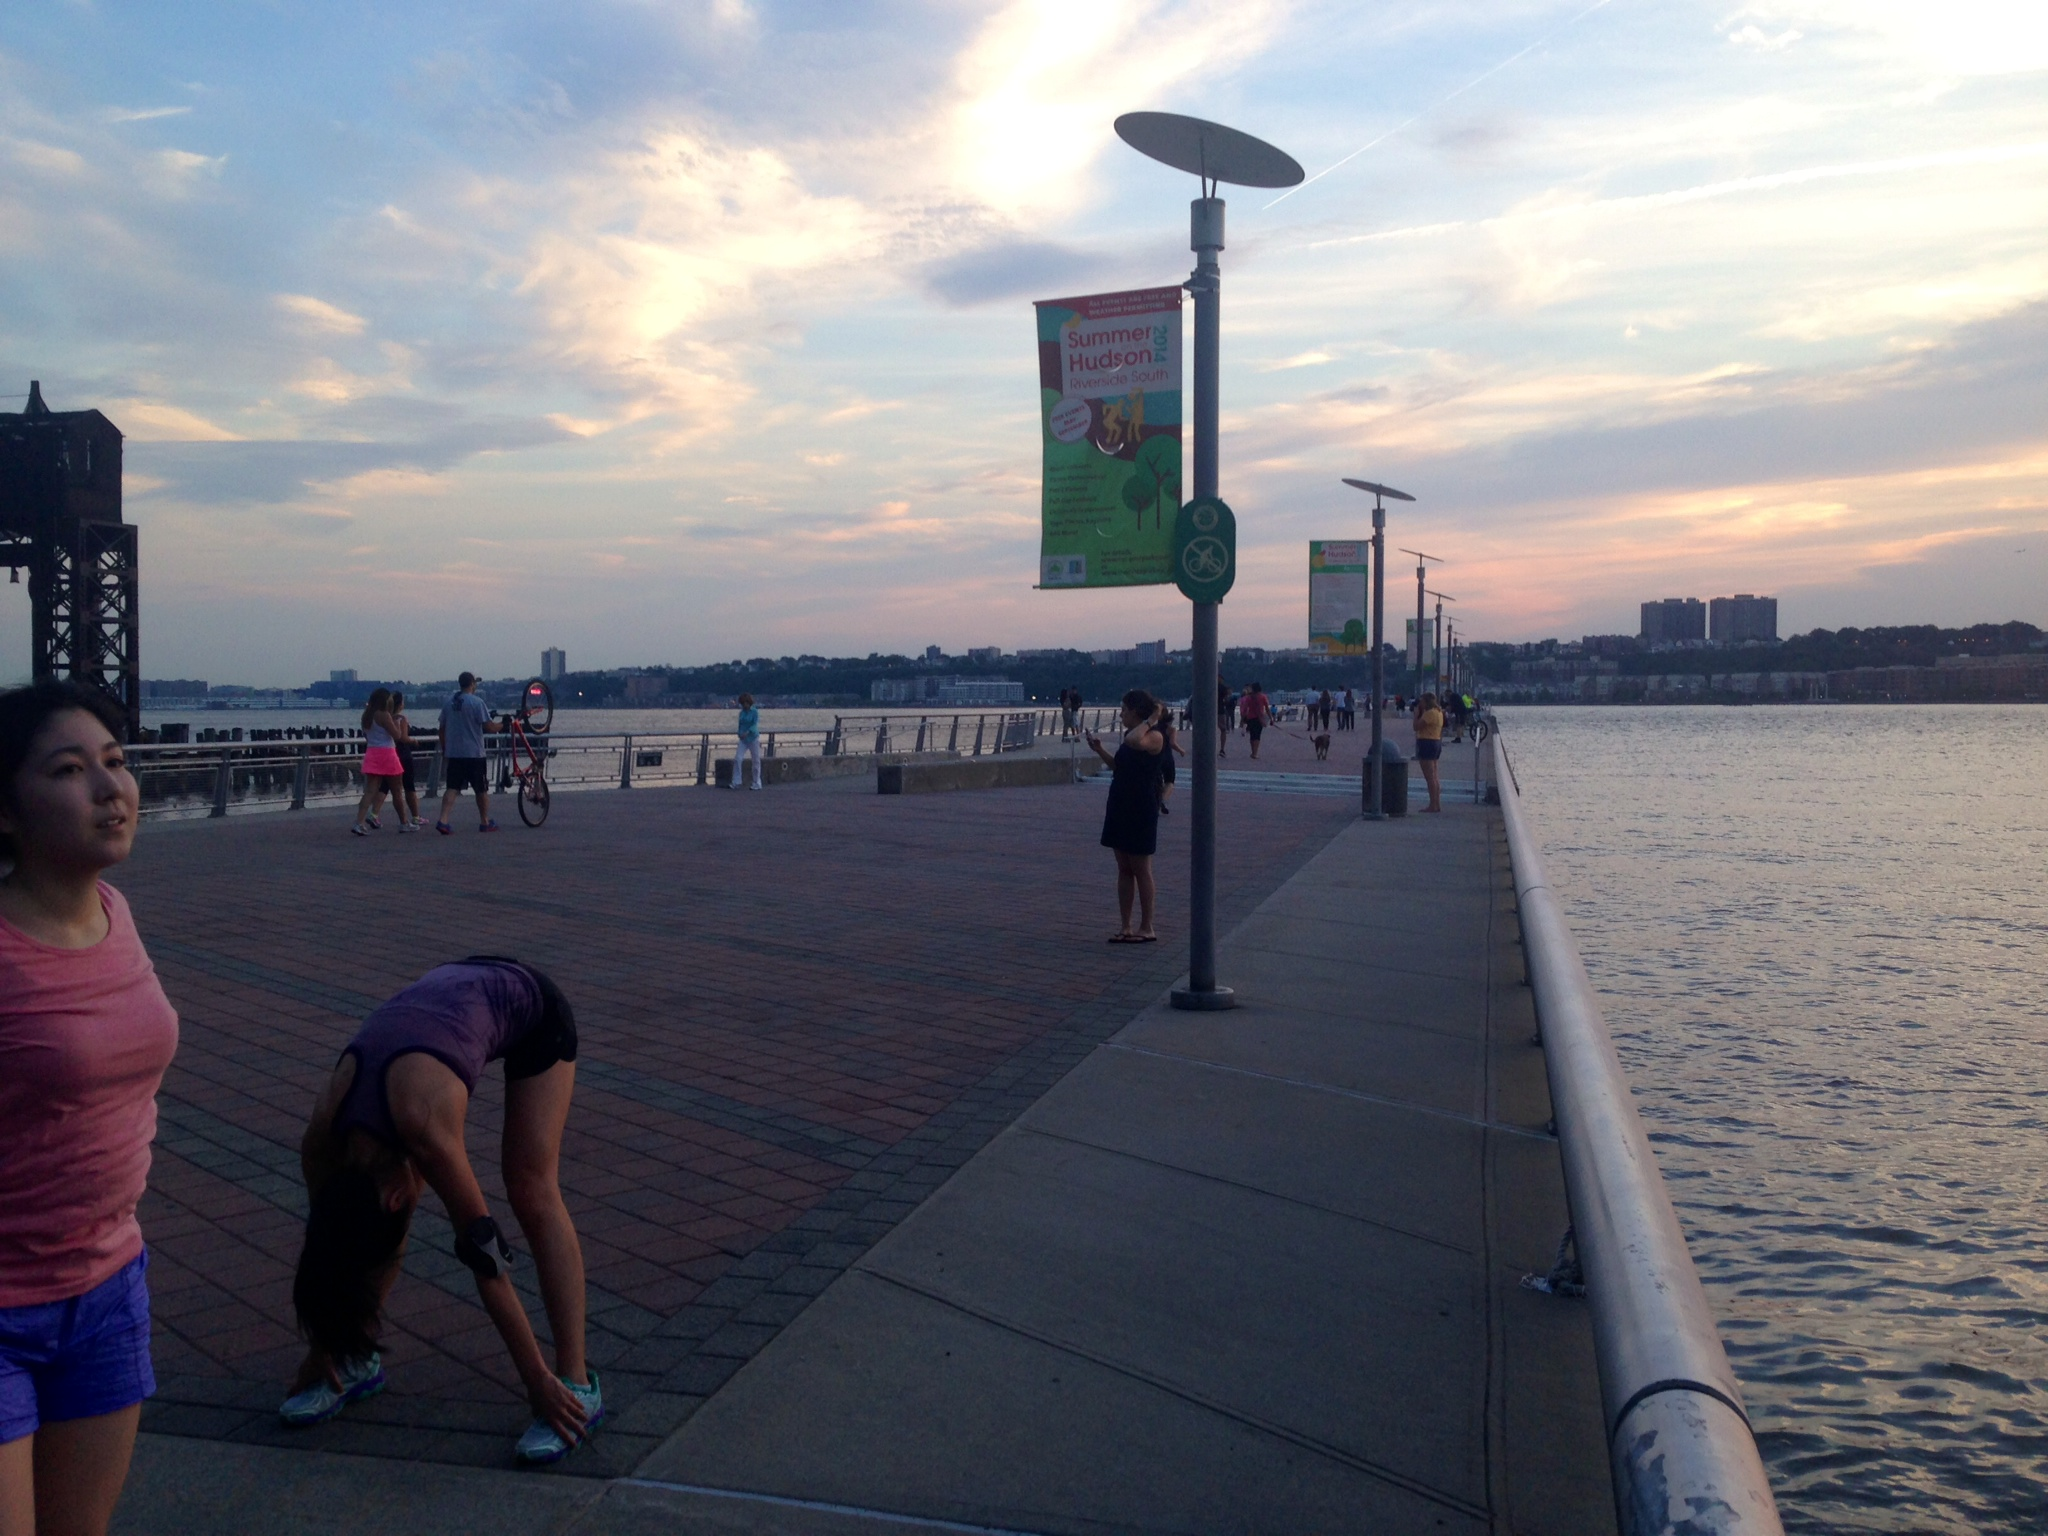 Running on the pier off the West Side Highway